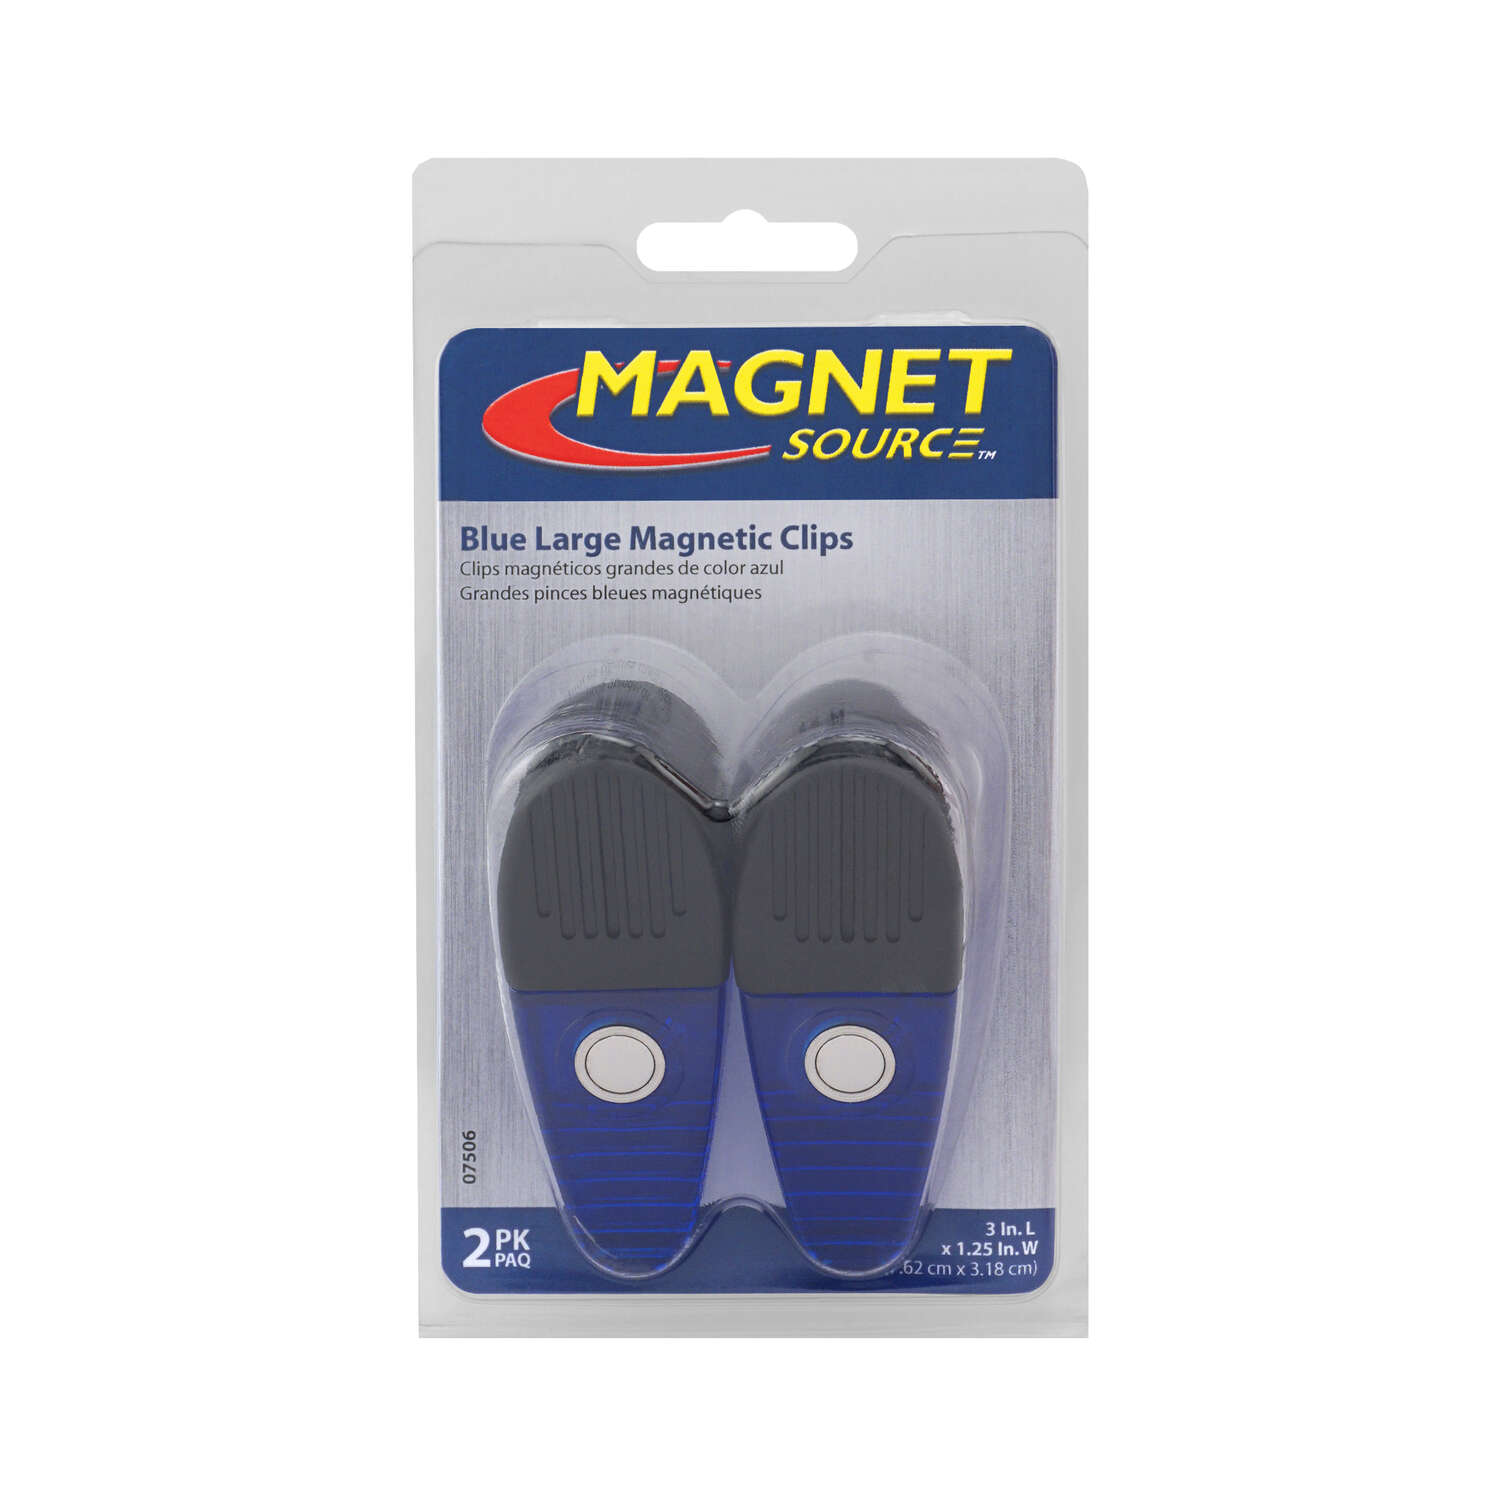 Master Magnetics  The Magnet Source  3.5 in. Neodymium/Plastic  Magnetic Clips  Blue  2 pc. 35 MGOe